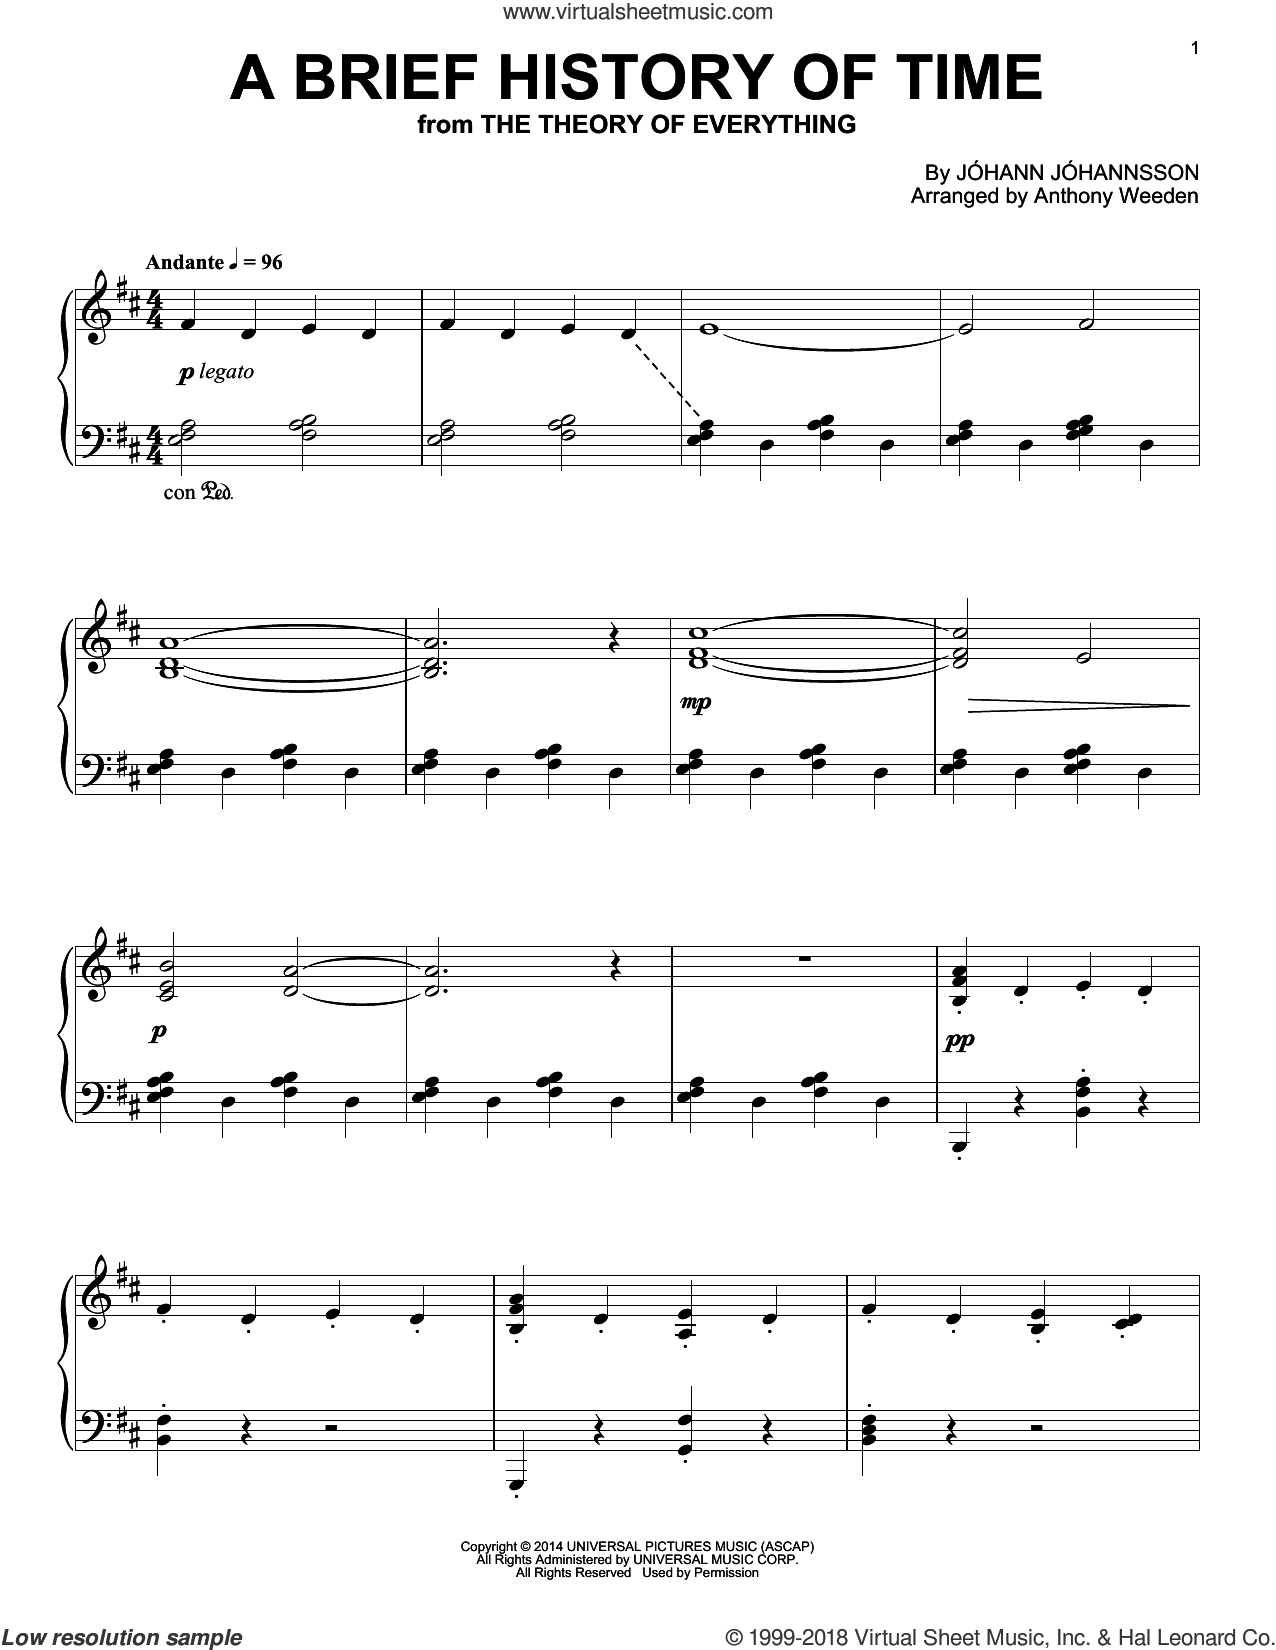 A Brief History Of Time sheet music for piano solo by Johann Johannsson, intermediate skill level